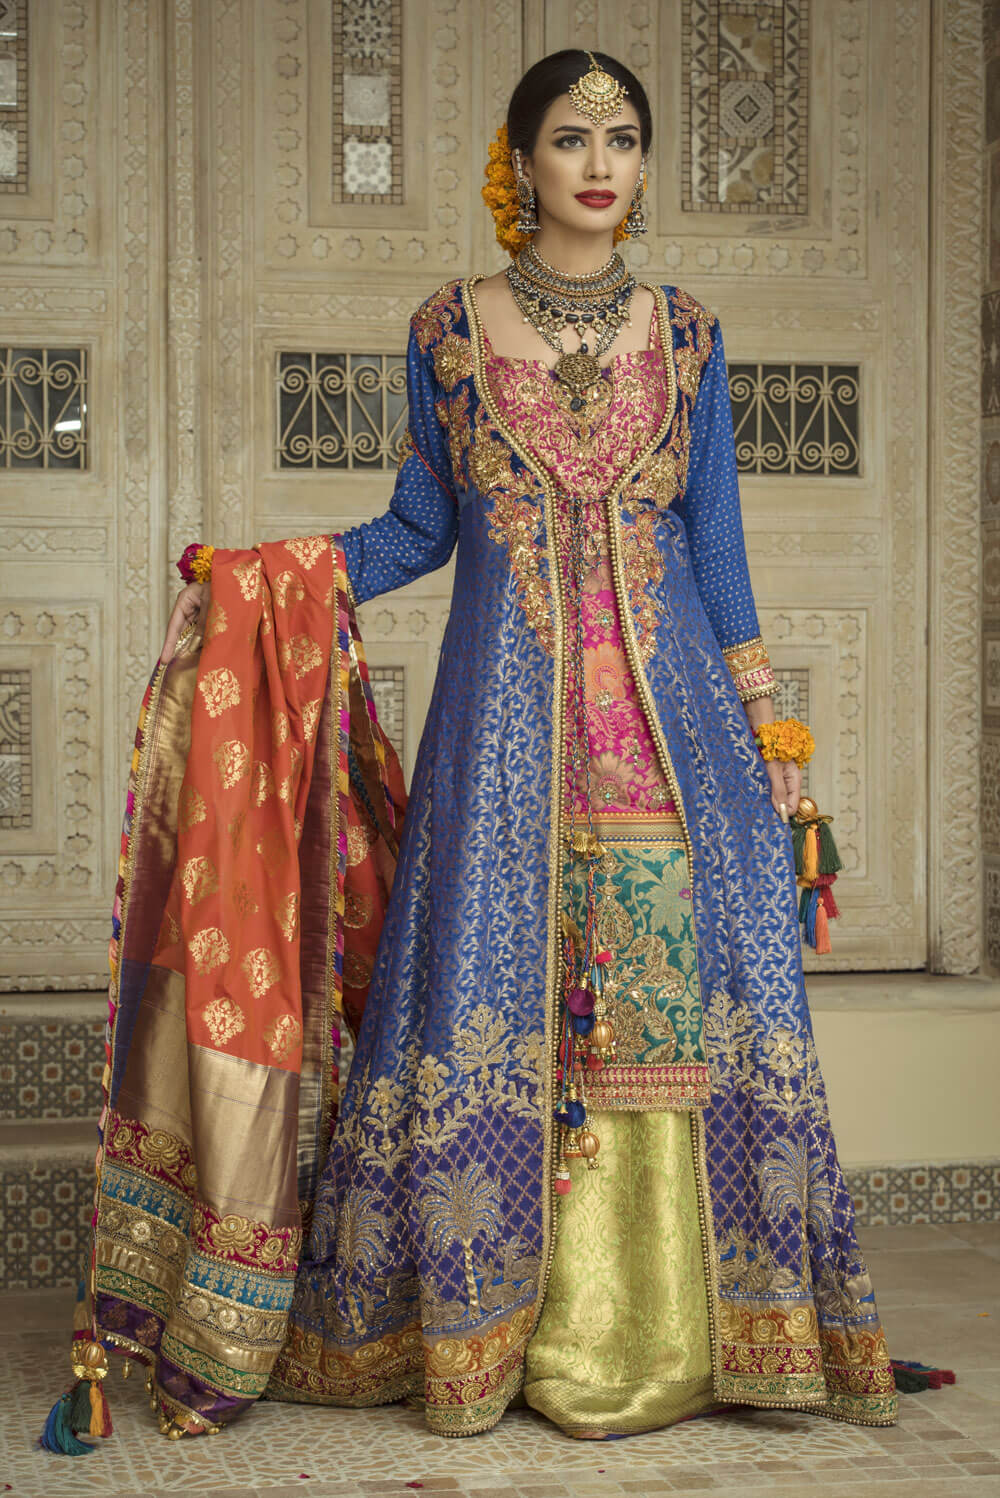 Multi Color Mehndi Outfit